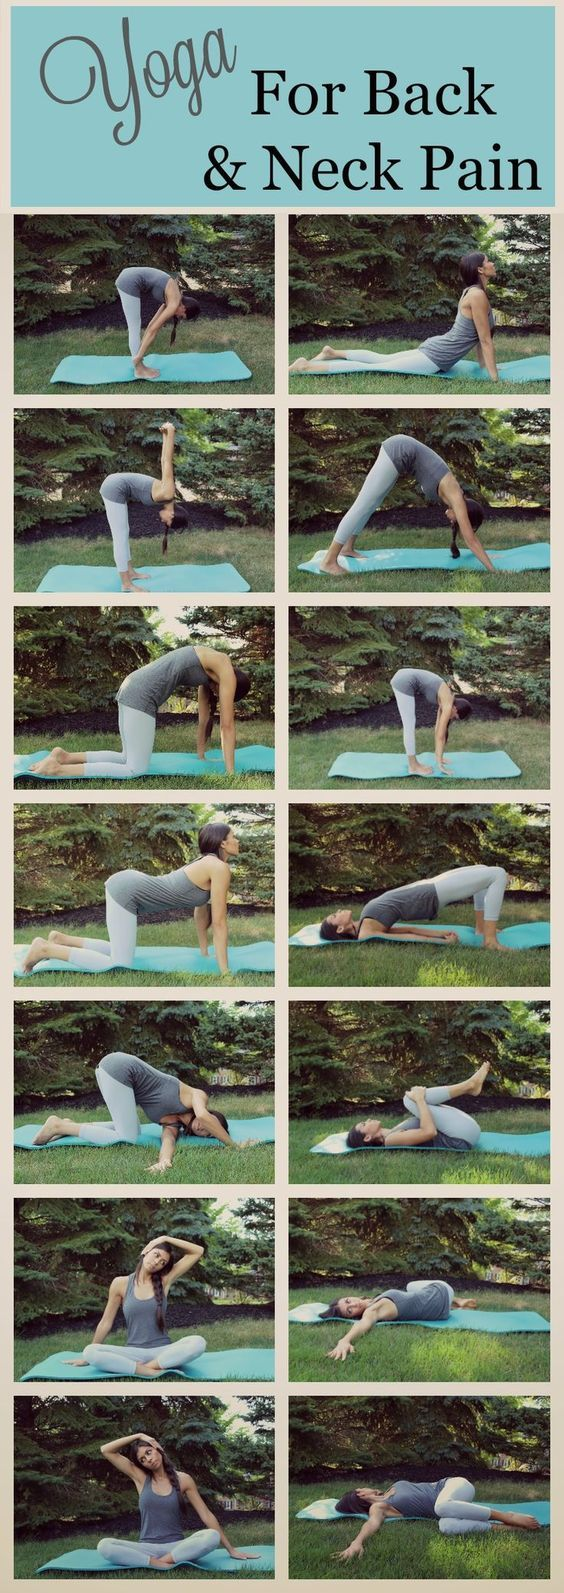 If you suffer from back or neck pain, give some of these yoga poses a try .  These poses are simple to do, even if you have never done yoga...